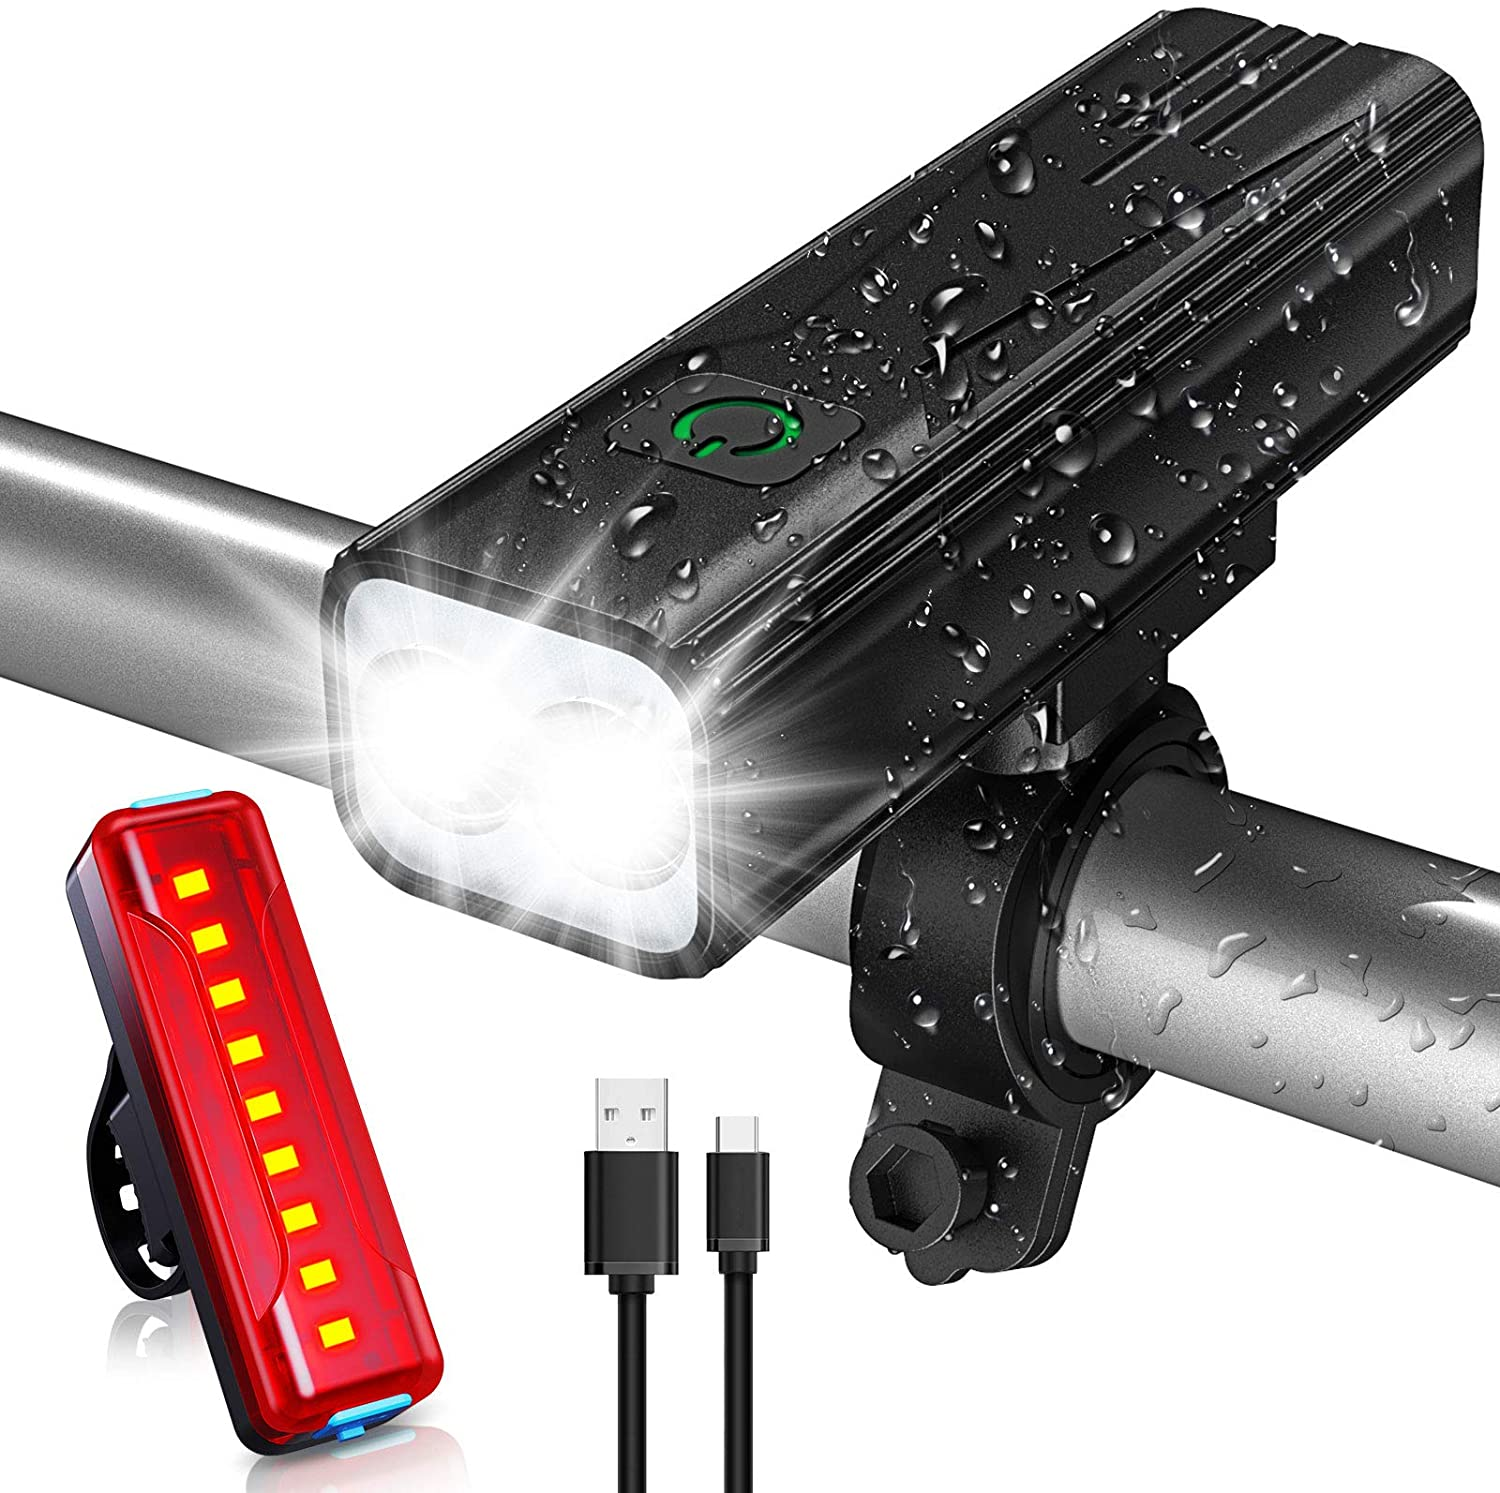 Babacom Bike Lights, 2000 Lumen Super Bright USB Rechargeable Bicycle Light, 5 Adjustable Lightness Cycling Front Light & Rear Light for Cycling Safety with IPX5 Waterproof & 6-50 Hours Running Time